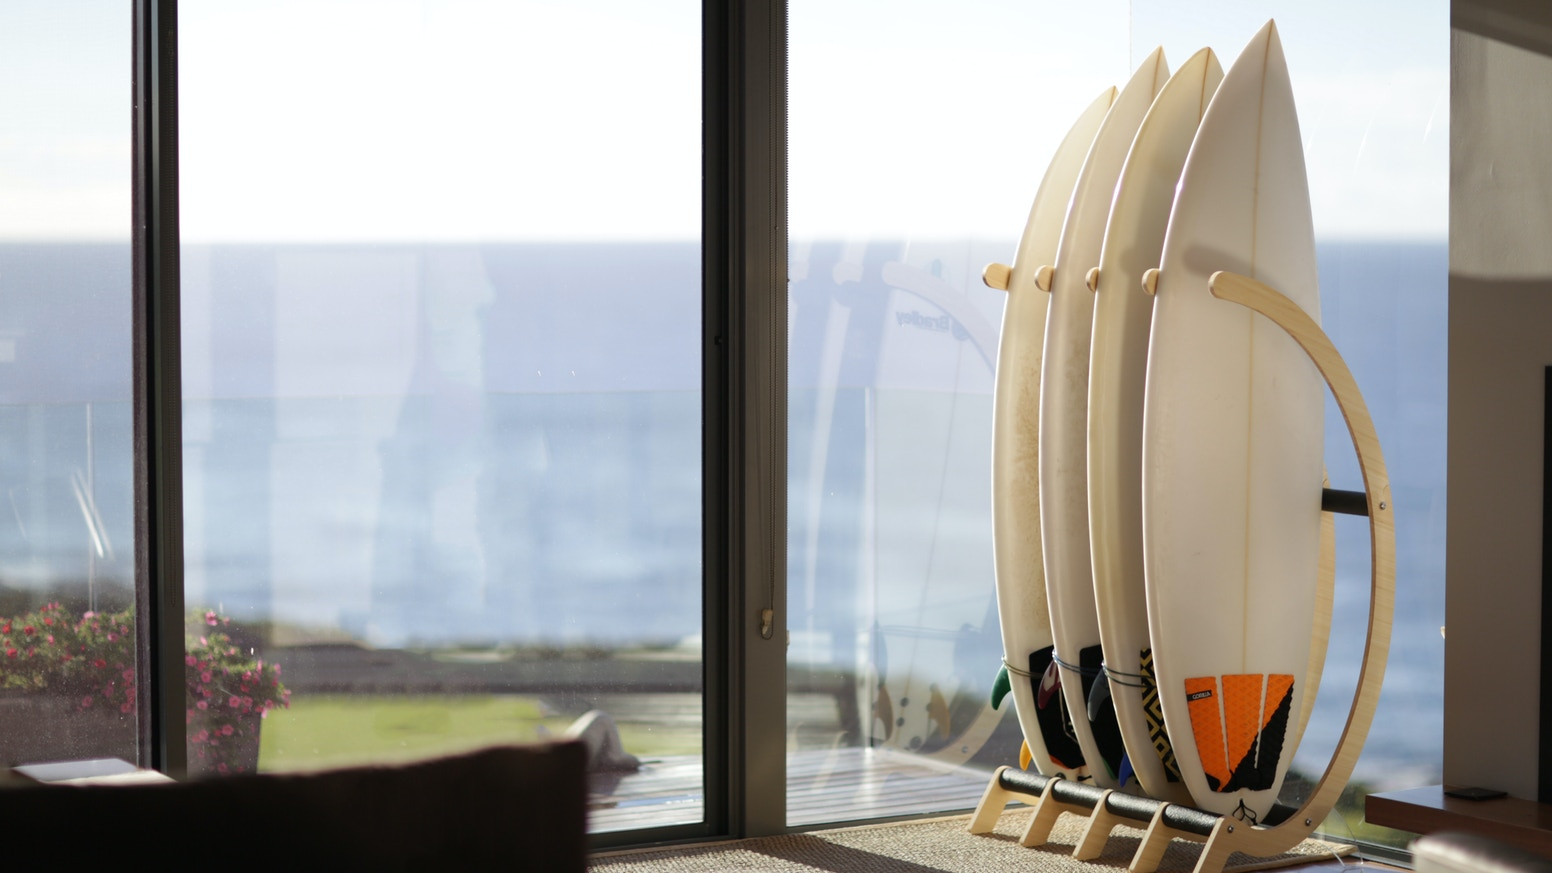 The Cactus rack is a freestanding display that can hold surf boards, kite boards, wake boards, snow boards and long boards.